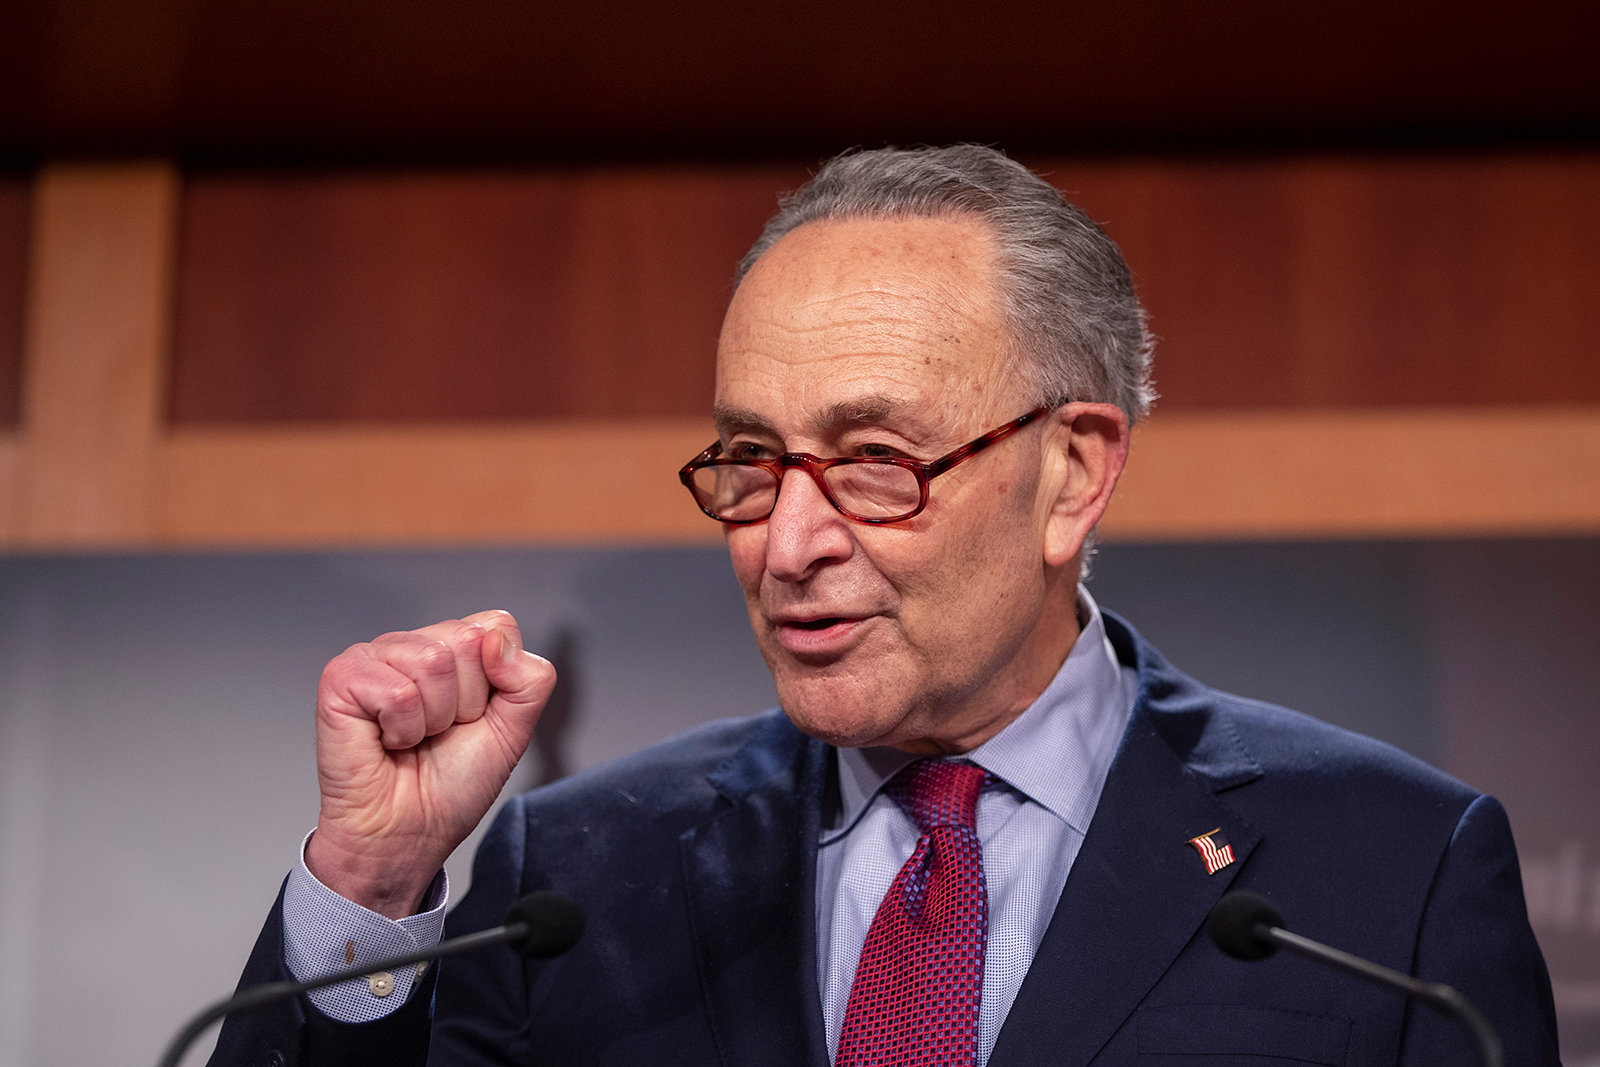 Senate Majority Leader Sen. Chuck Schumer speaks to the press at the Capitol on March 6, in Washington, DC.